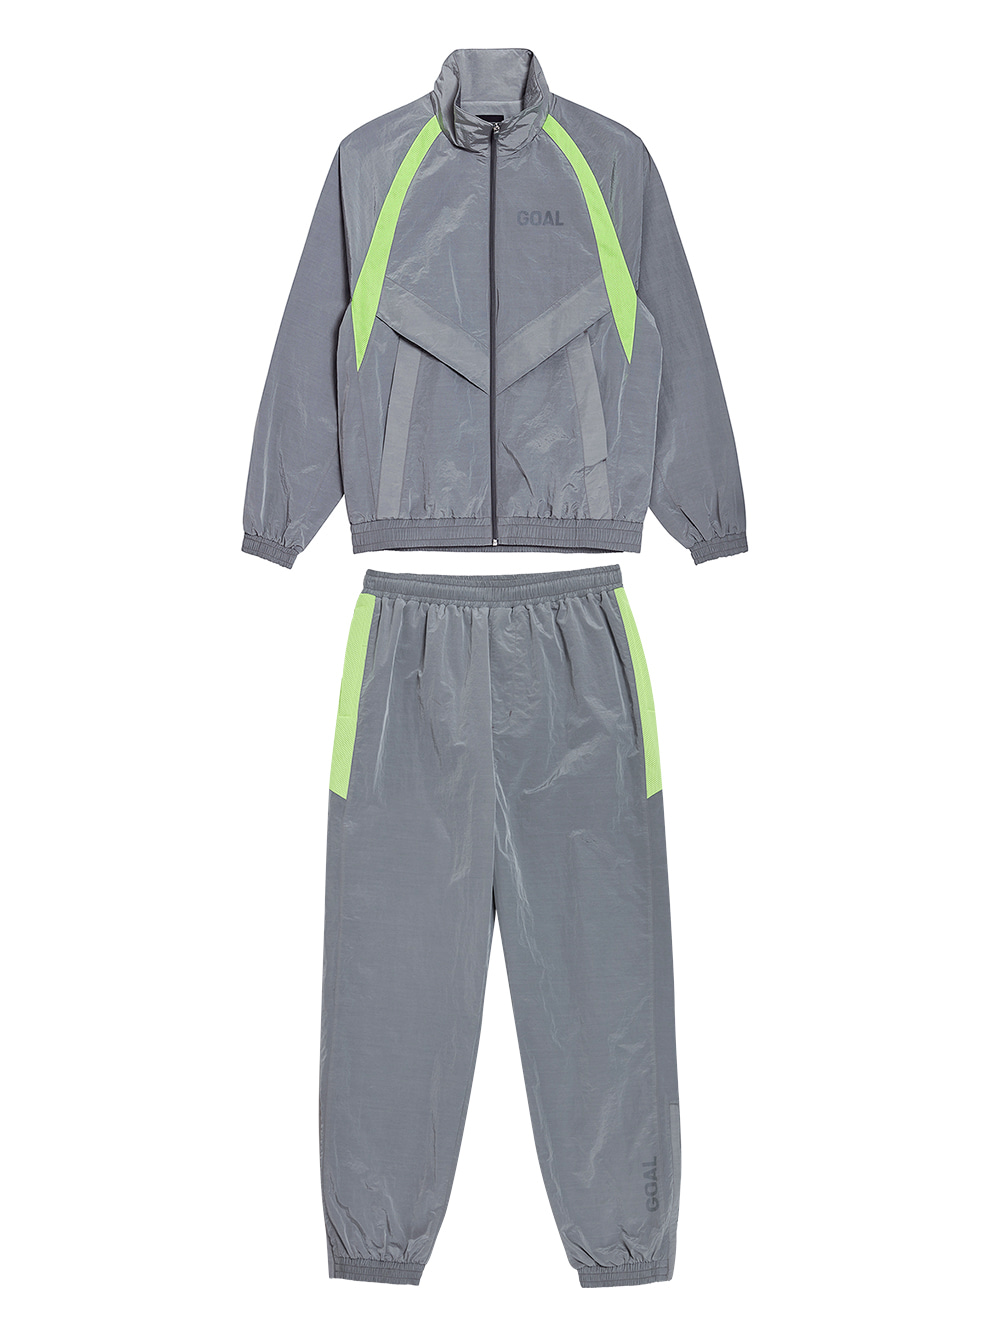 GOALSTUDIO [10% OFF] WARMUP JACKET & PANTS SET - GREY